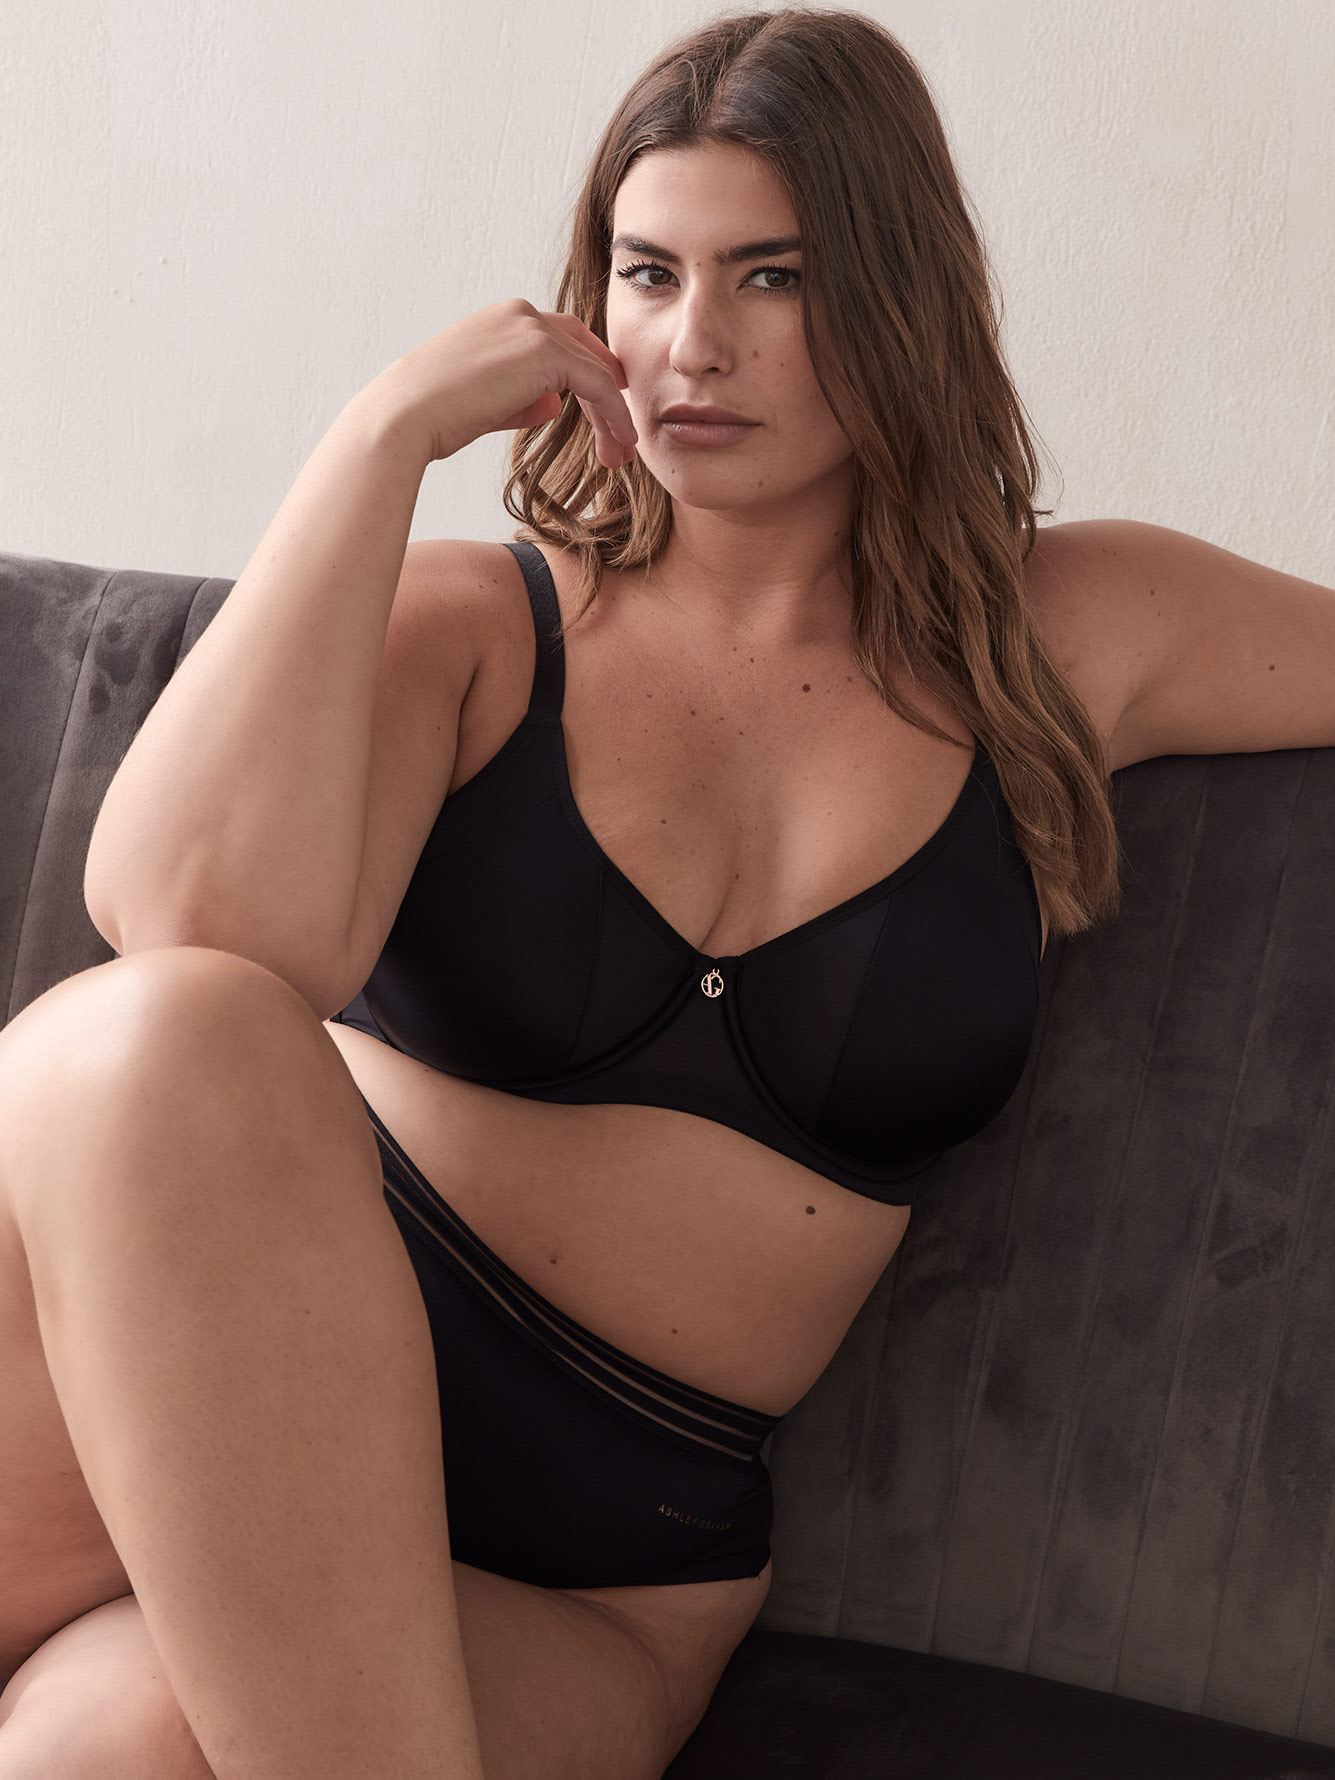 Invisible Thong Panty - Ashley Graham